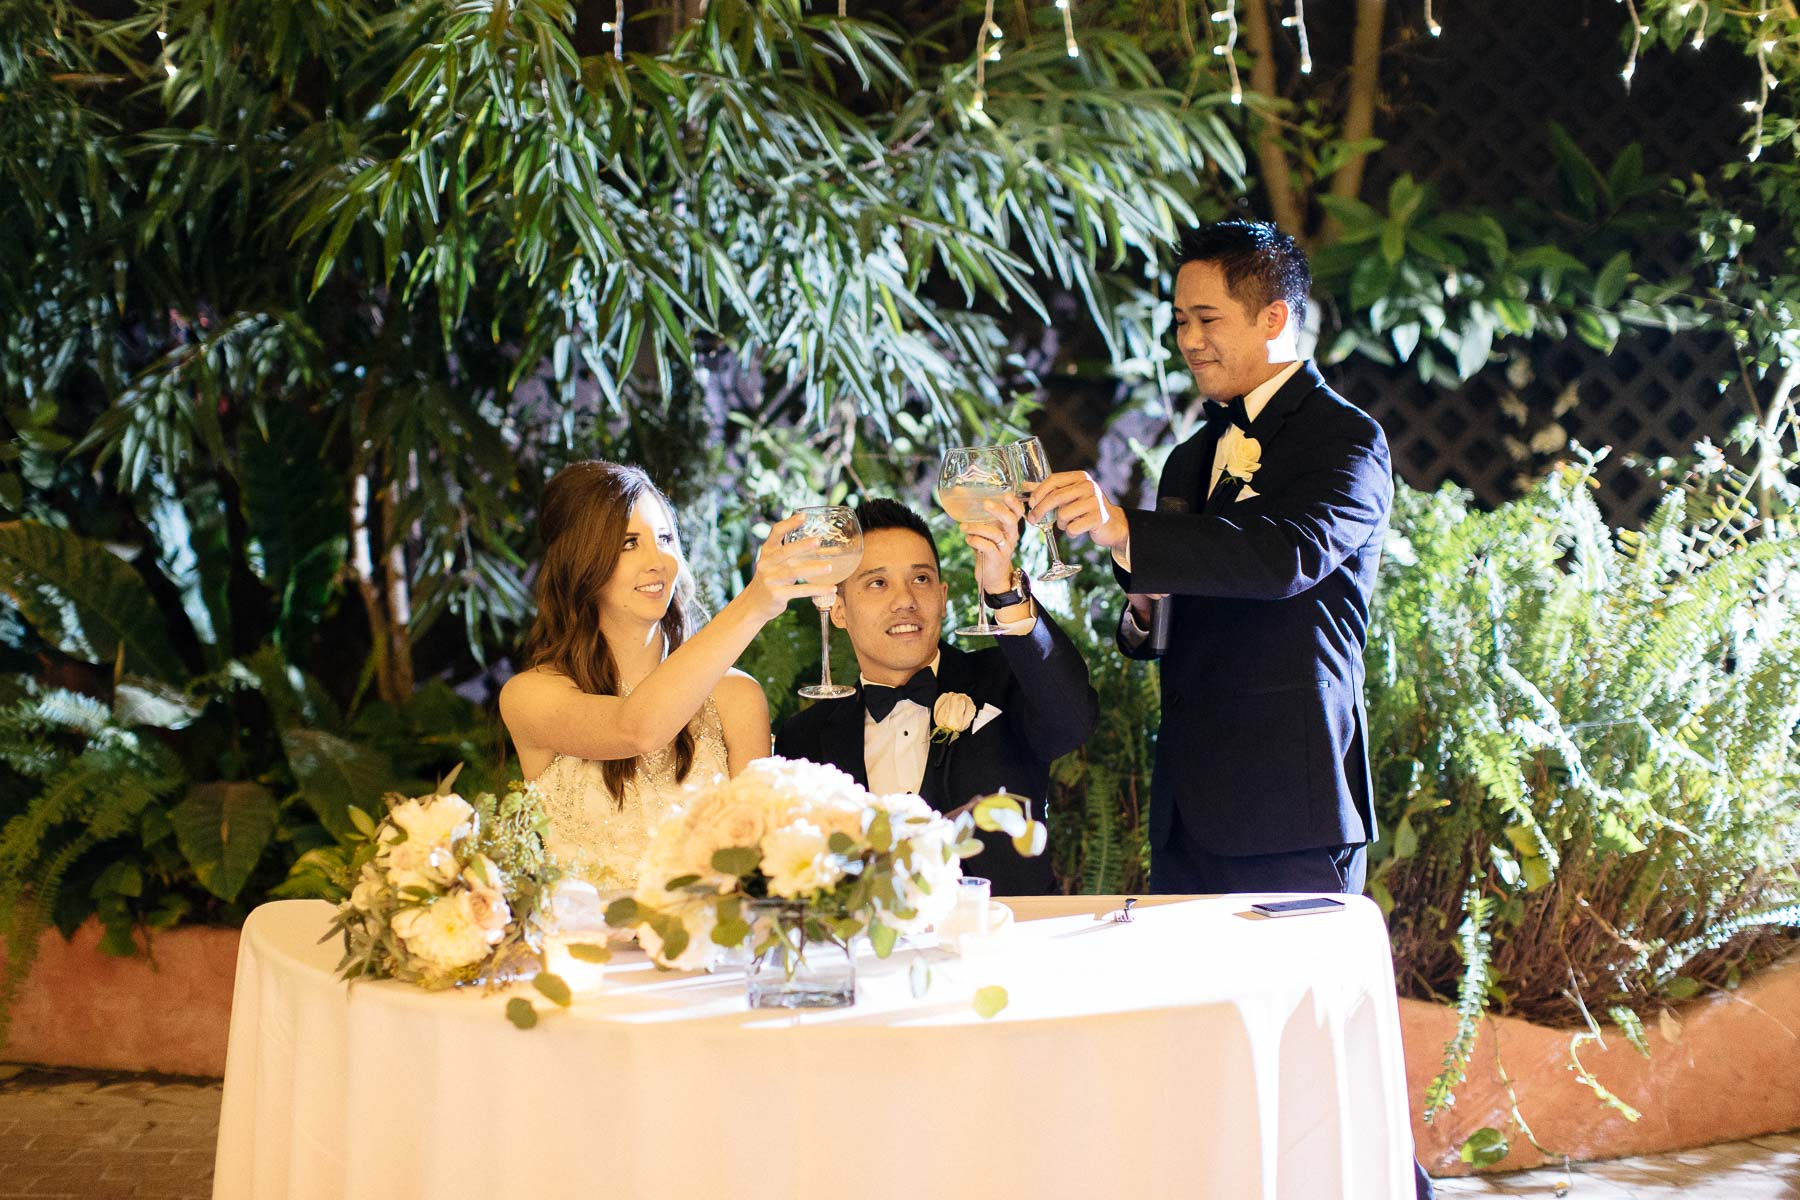 161112-Luxium-Weddings-Arizona-Jon-Madison-Boojum-Tree-First-Look-044.jpg